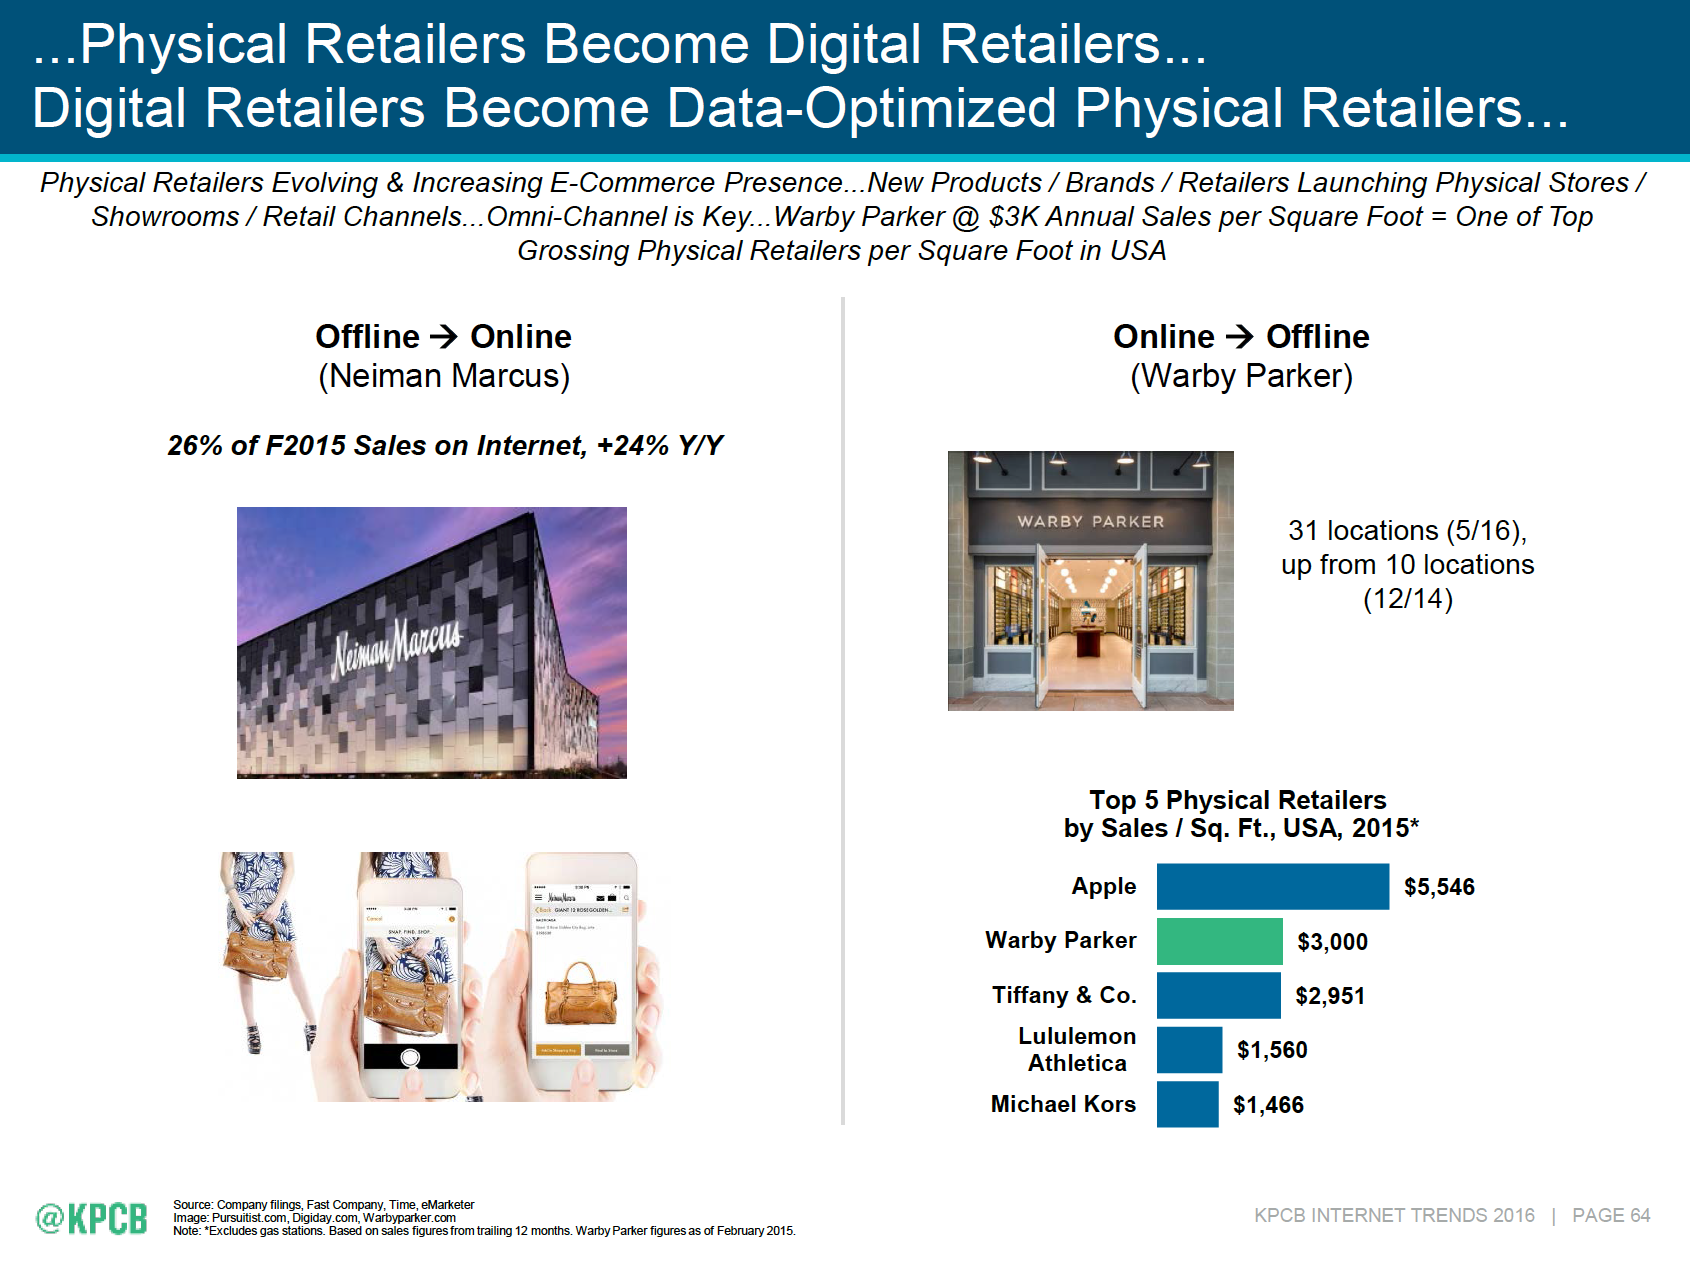 Physical retailers become digital retailers - Mary Meeker's 2016 Internet Trends Report